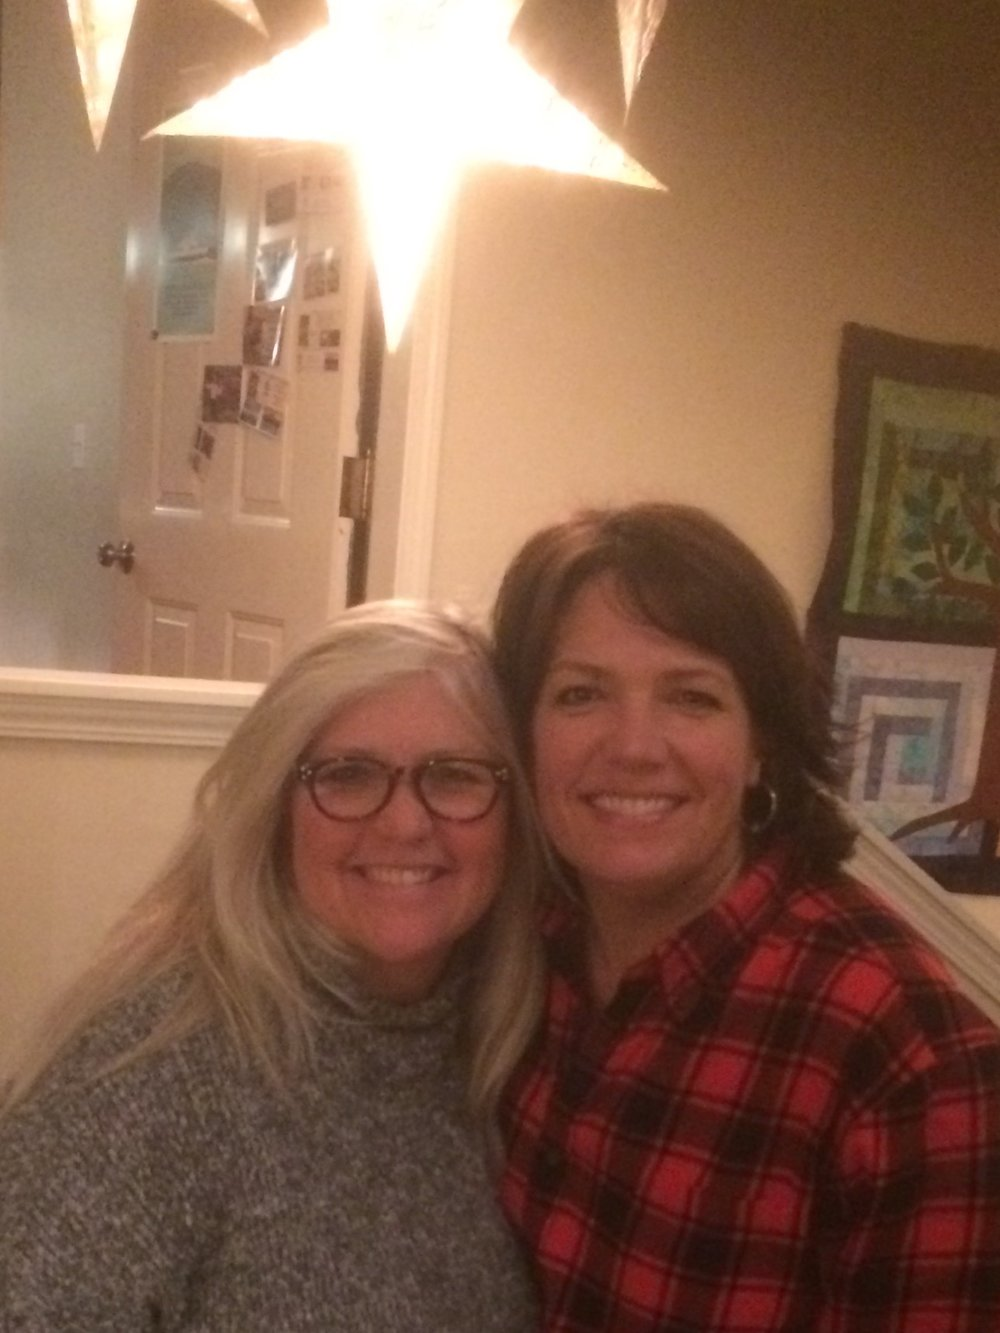 Tammy and Kjerstin - Join Tammy, The Memoir Coach, and Kjerstin, REC Retreats Retreat Specialist, for a special day of learning, growing and pampering. More information to come!